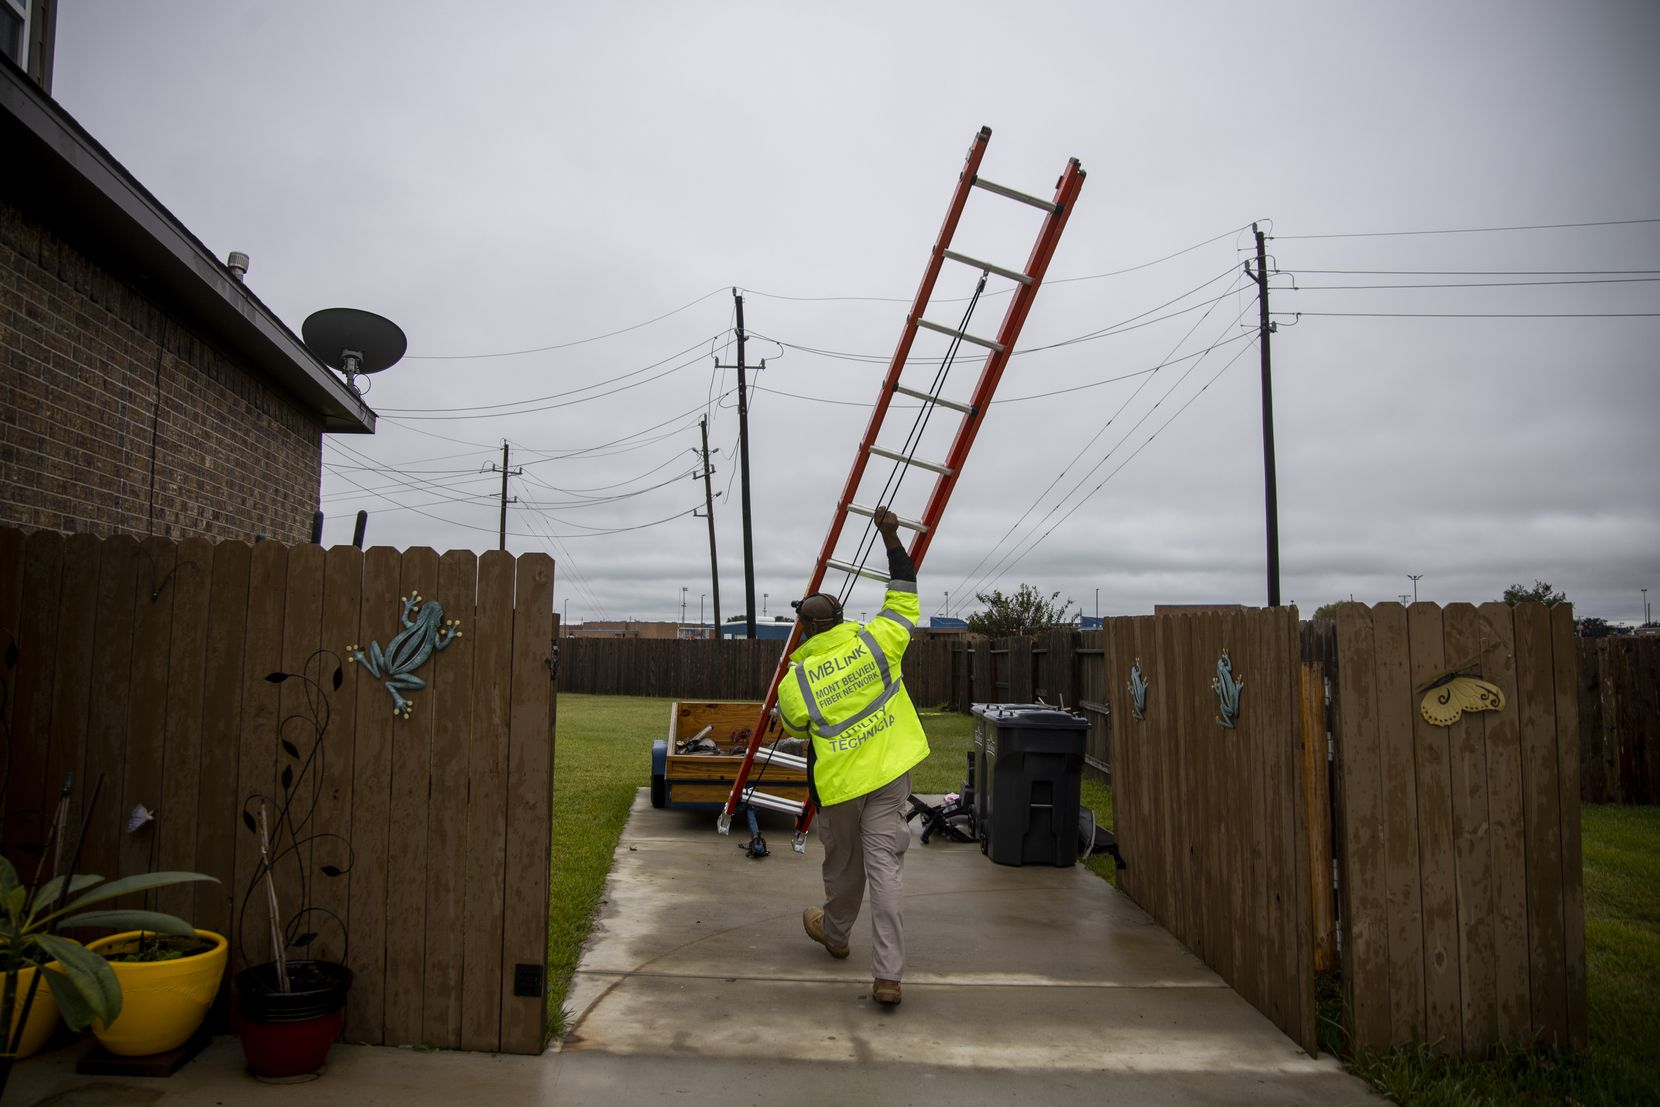 O'Neil Young, broadband installation technician for MB Link, carries a ladder as he works on installing internet for a customer. The city's fiber to the home internet service costs $75 a month for speeds of up to 1 gigabit per second.